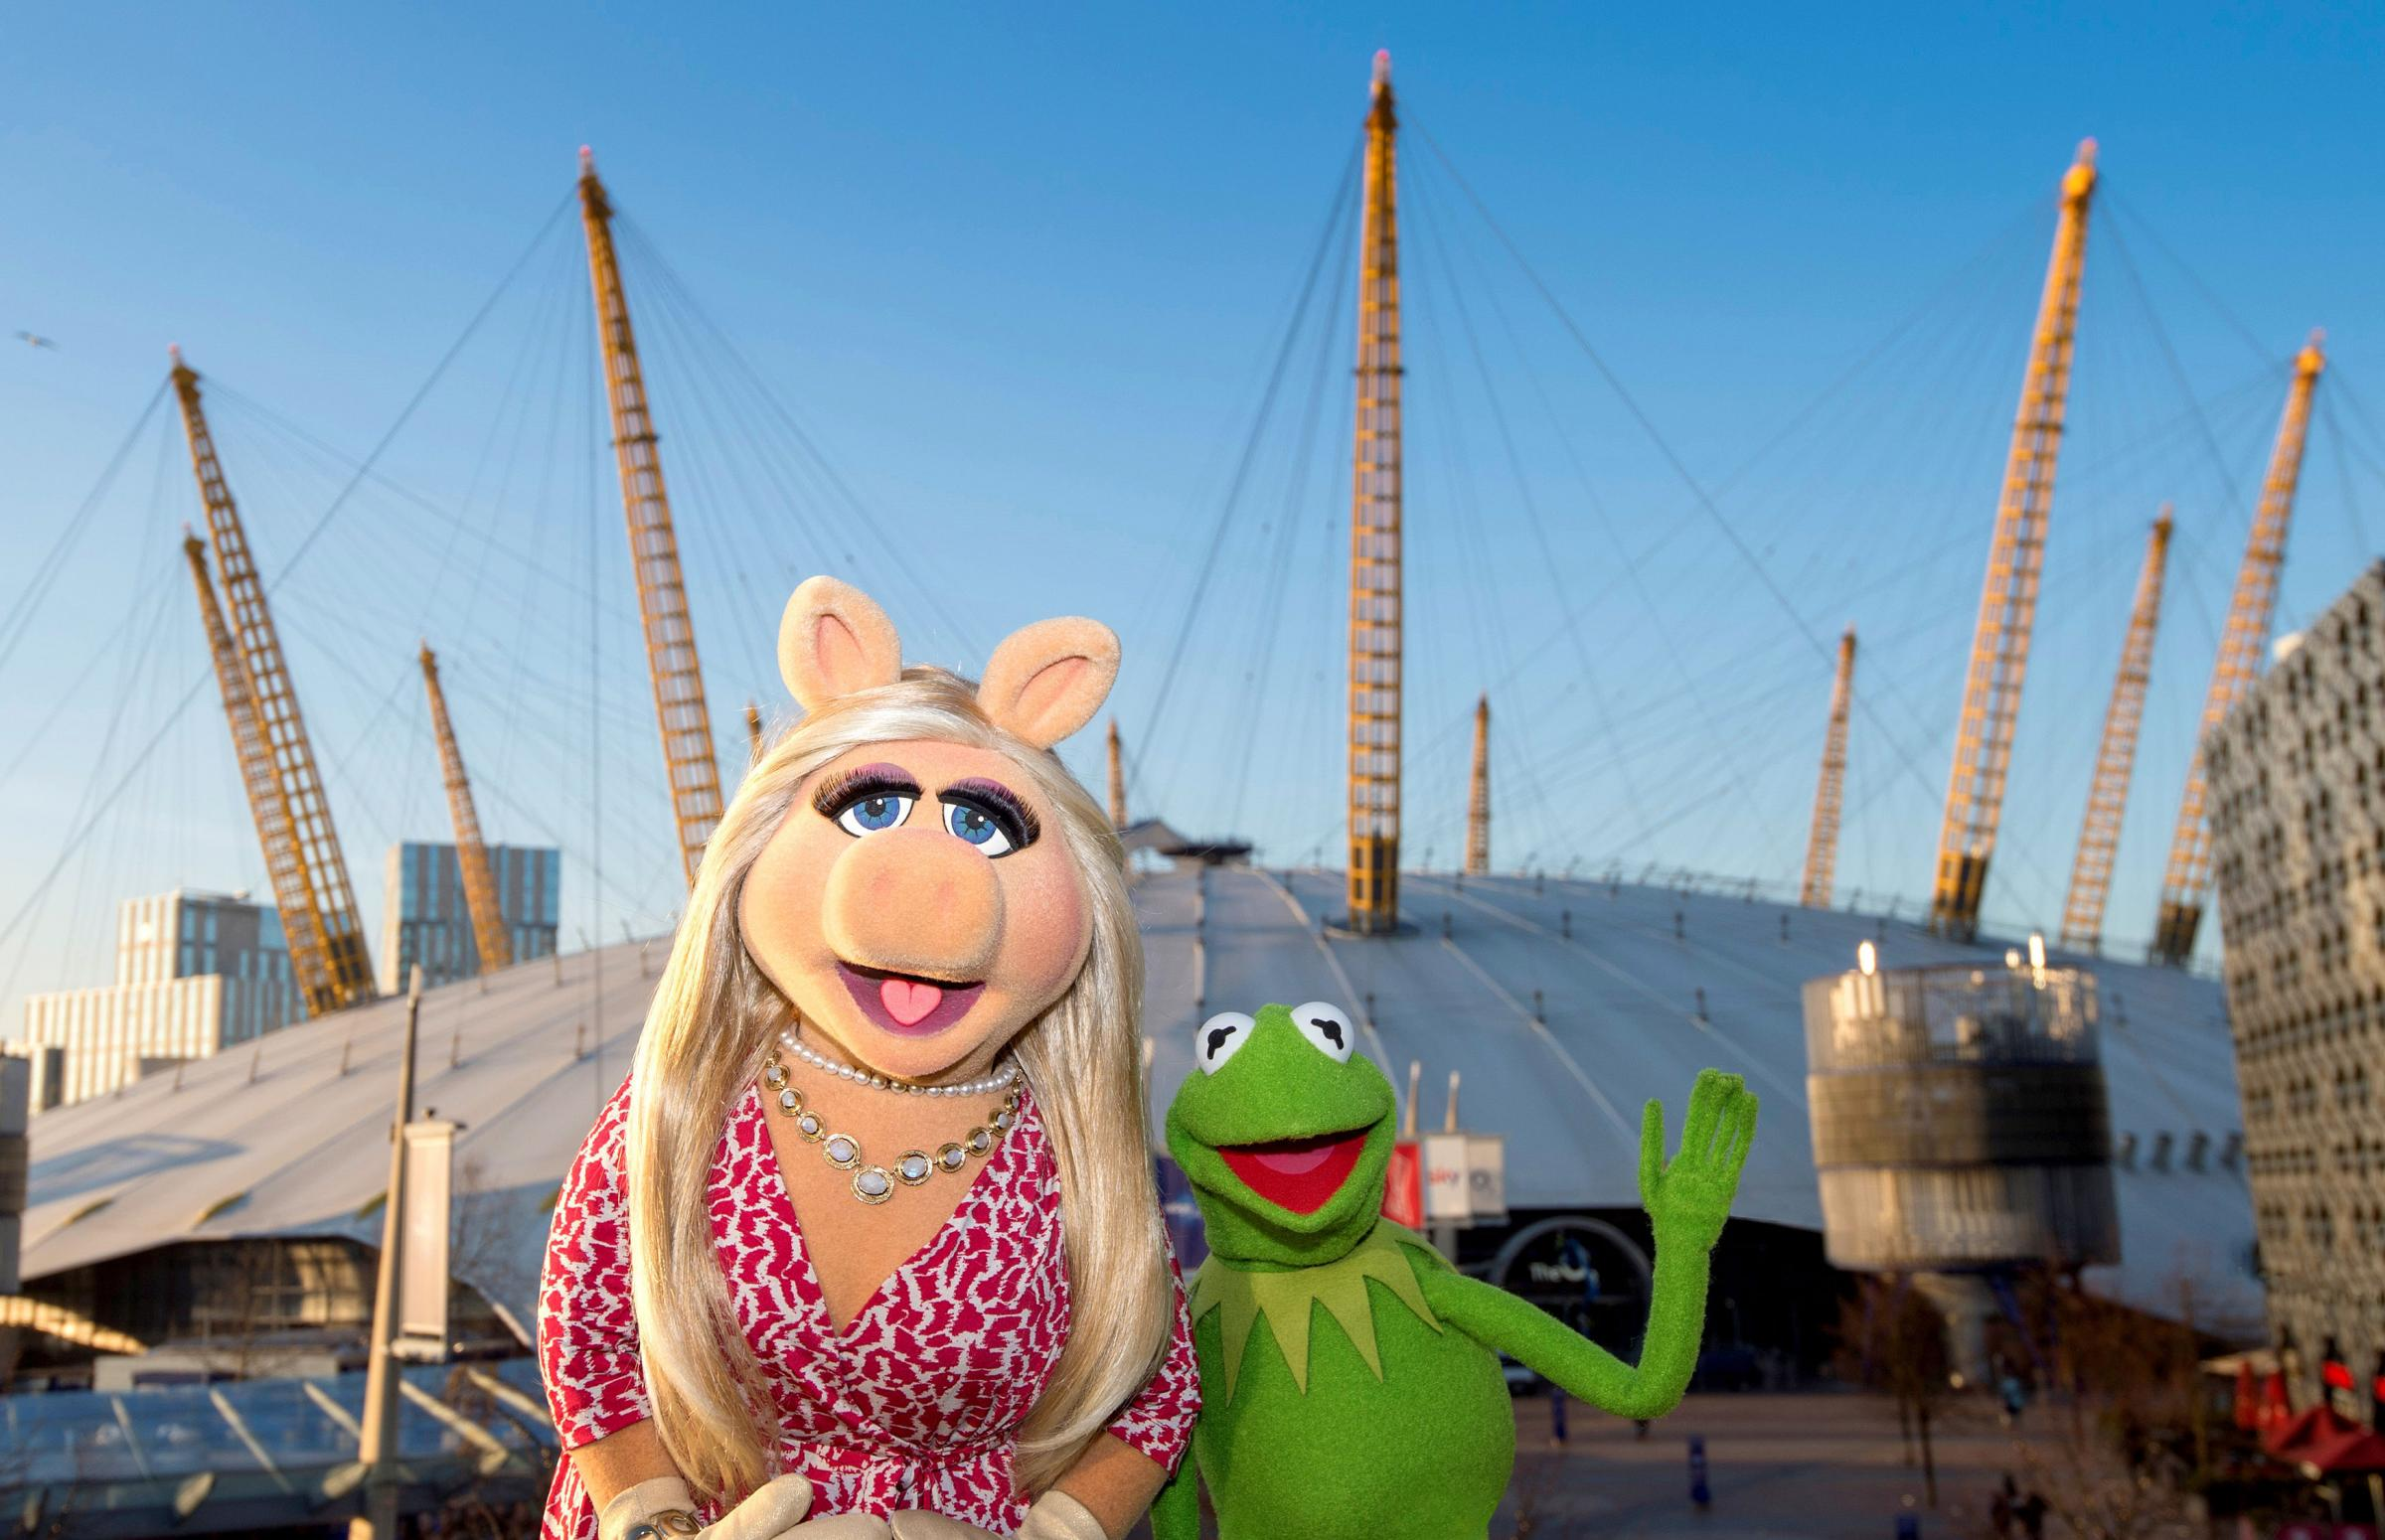 Miss Piggy and Kermit, as the pig puppet has said that she will be angling for an invitation to the royal wedding when The Muppets come to London for their first ever full-length live shows in Europe. Photo: AEG Presents/PA Wire